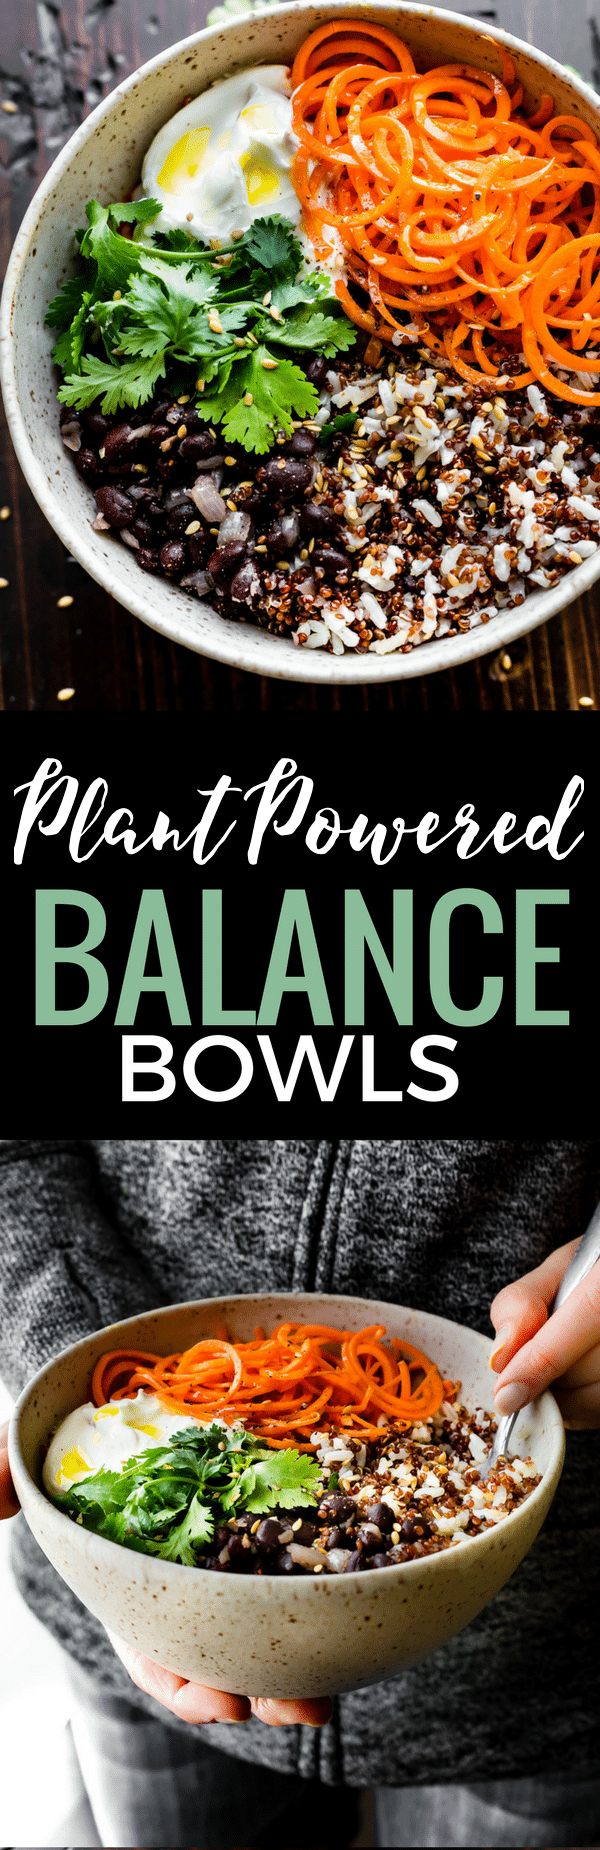 """Gluten free Balance Bowls! No matter what you call these plant powered """"balance bowls""""— Powerbowls, buddha bowls, Macro Bowls, Quinoa Bowls, etc. They truly are easy to make! A healthy meal prep bowl packed full of balanced macronutrients, vitamins, minerals, and more! www.cottercrunch.com"""